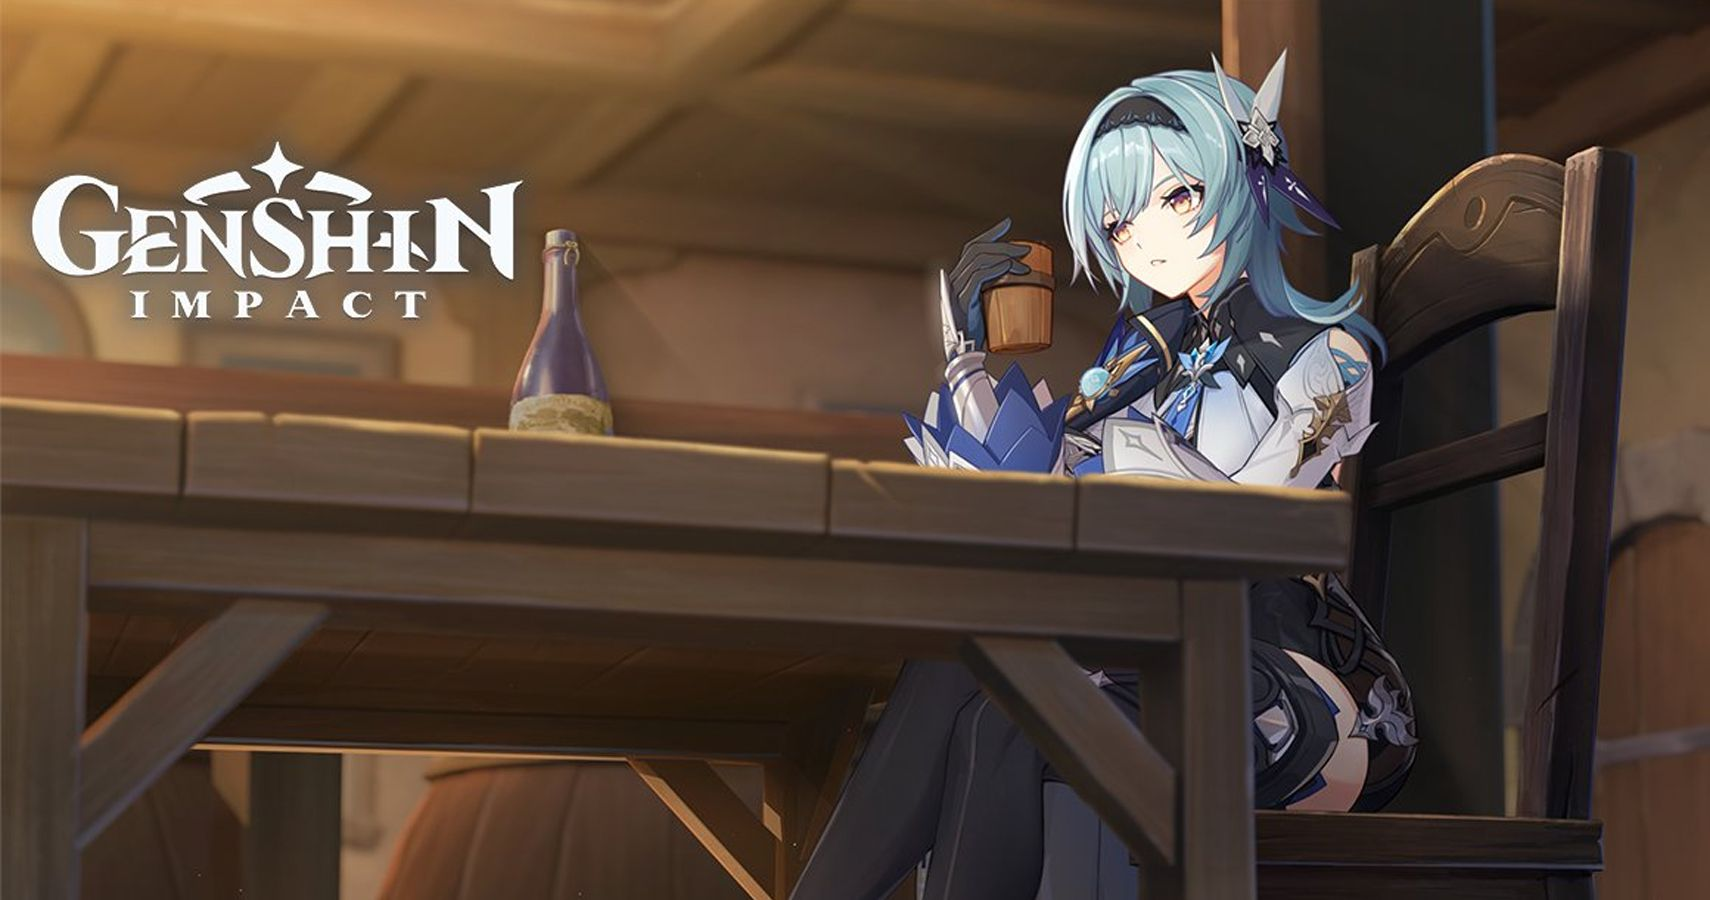 How To Get The New Genshin Impact Live Wallpaper Featuring Eula